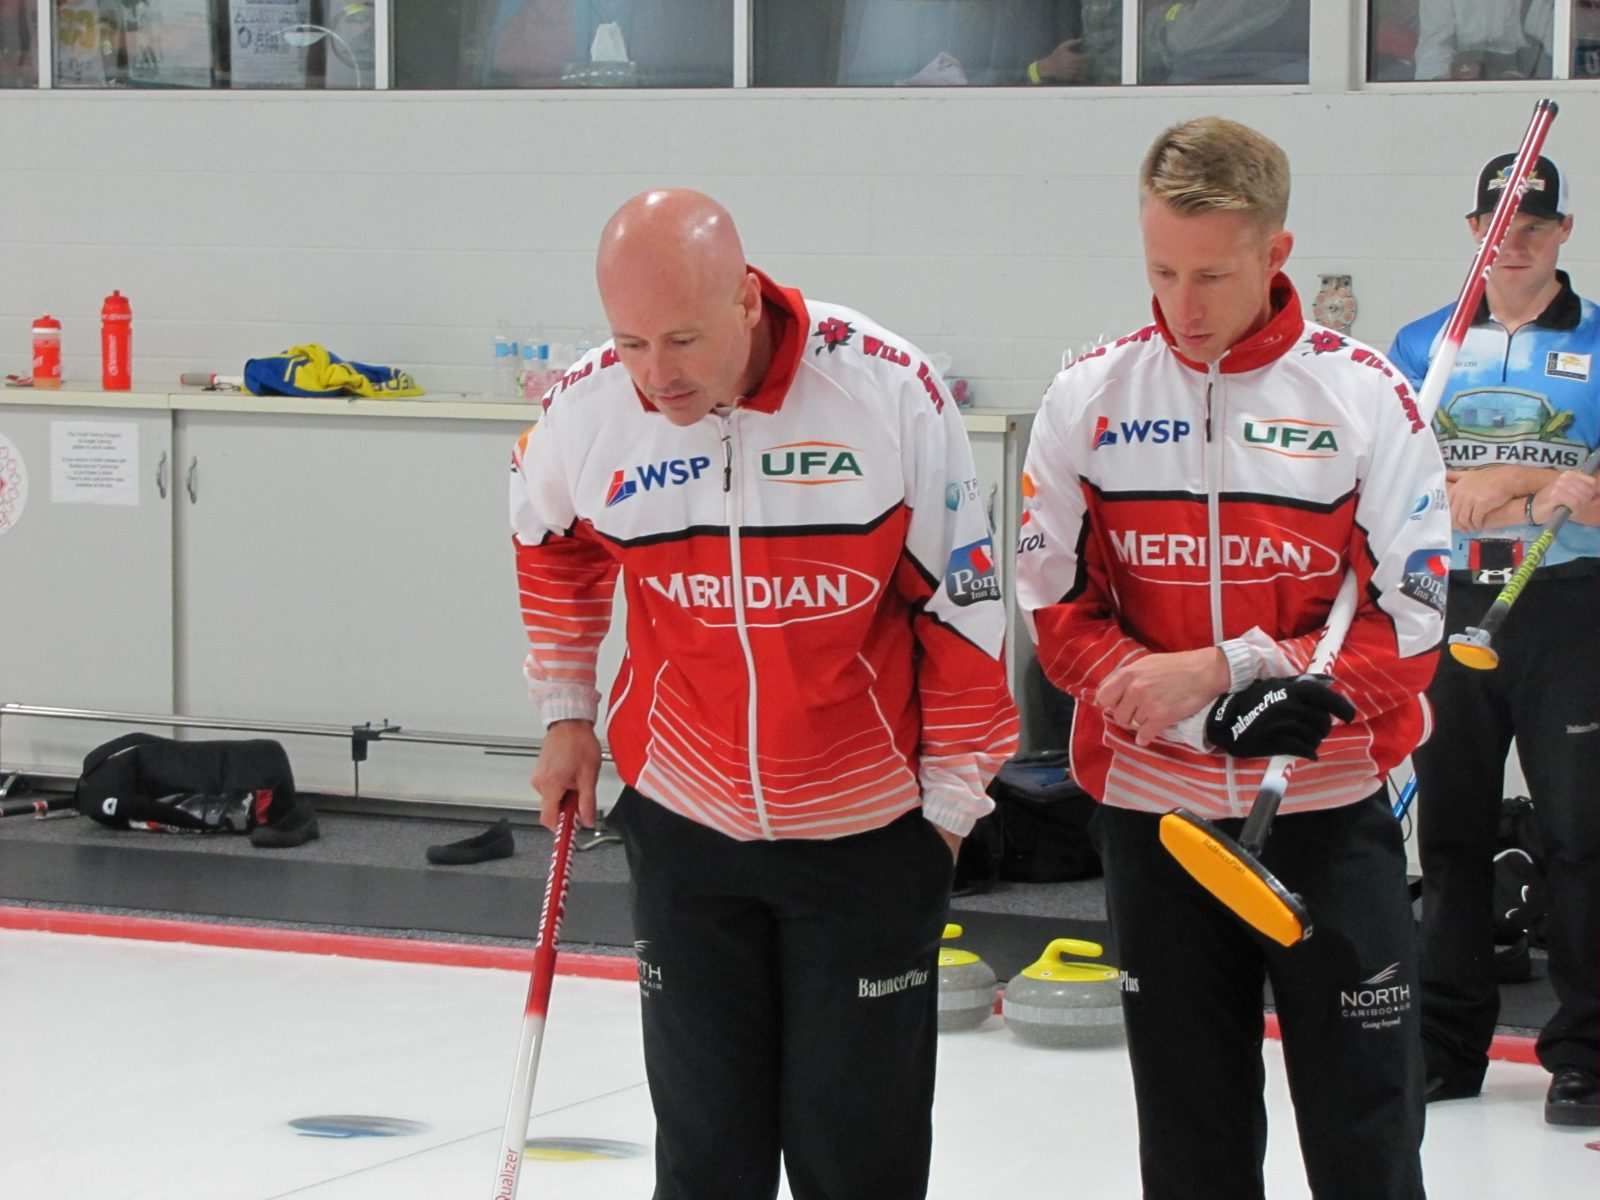 World Class Curling Returns to Cornwall